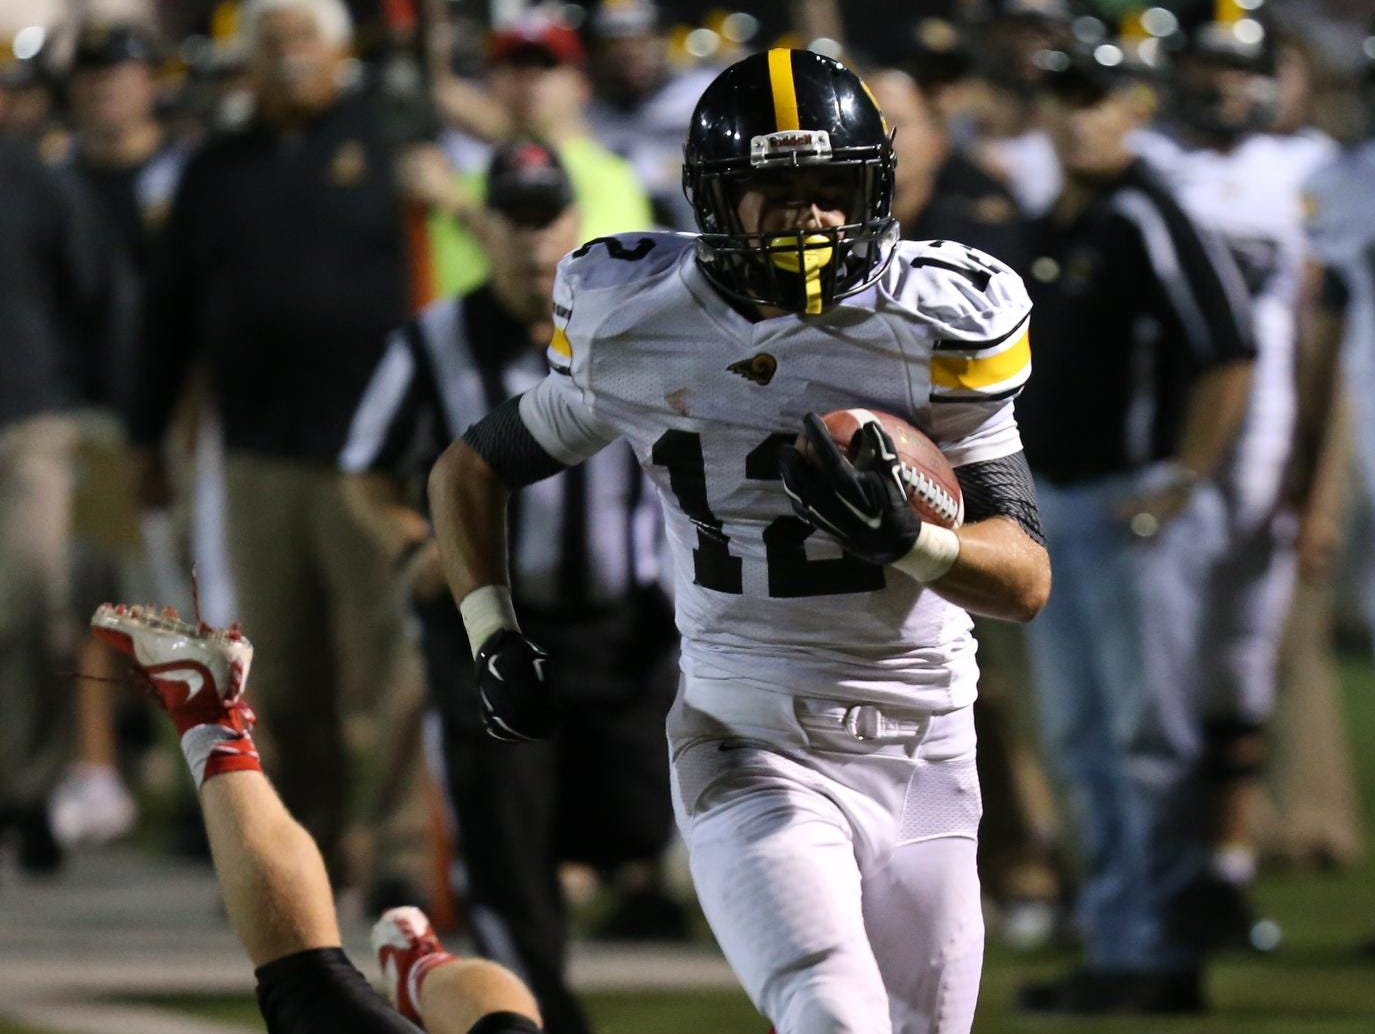 Southeast Polk running back Cole Hauser escapes a diving effort from Des Moines East's Rory Walling on the way to a touchdown Friday at Williams Stadium. Hauser rushed for 159 yards and had four total touchdowns in a 56-7 victory.